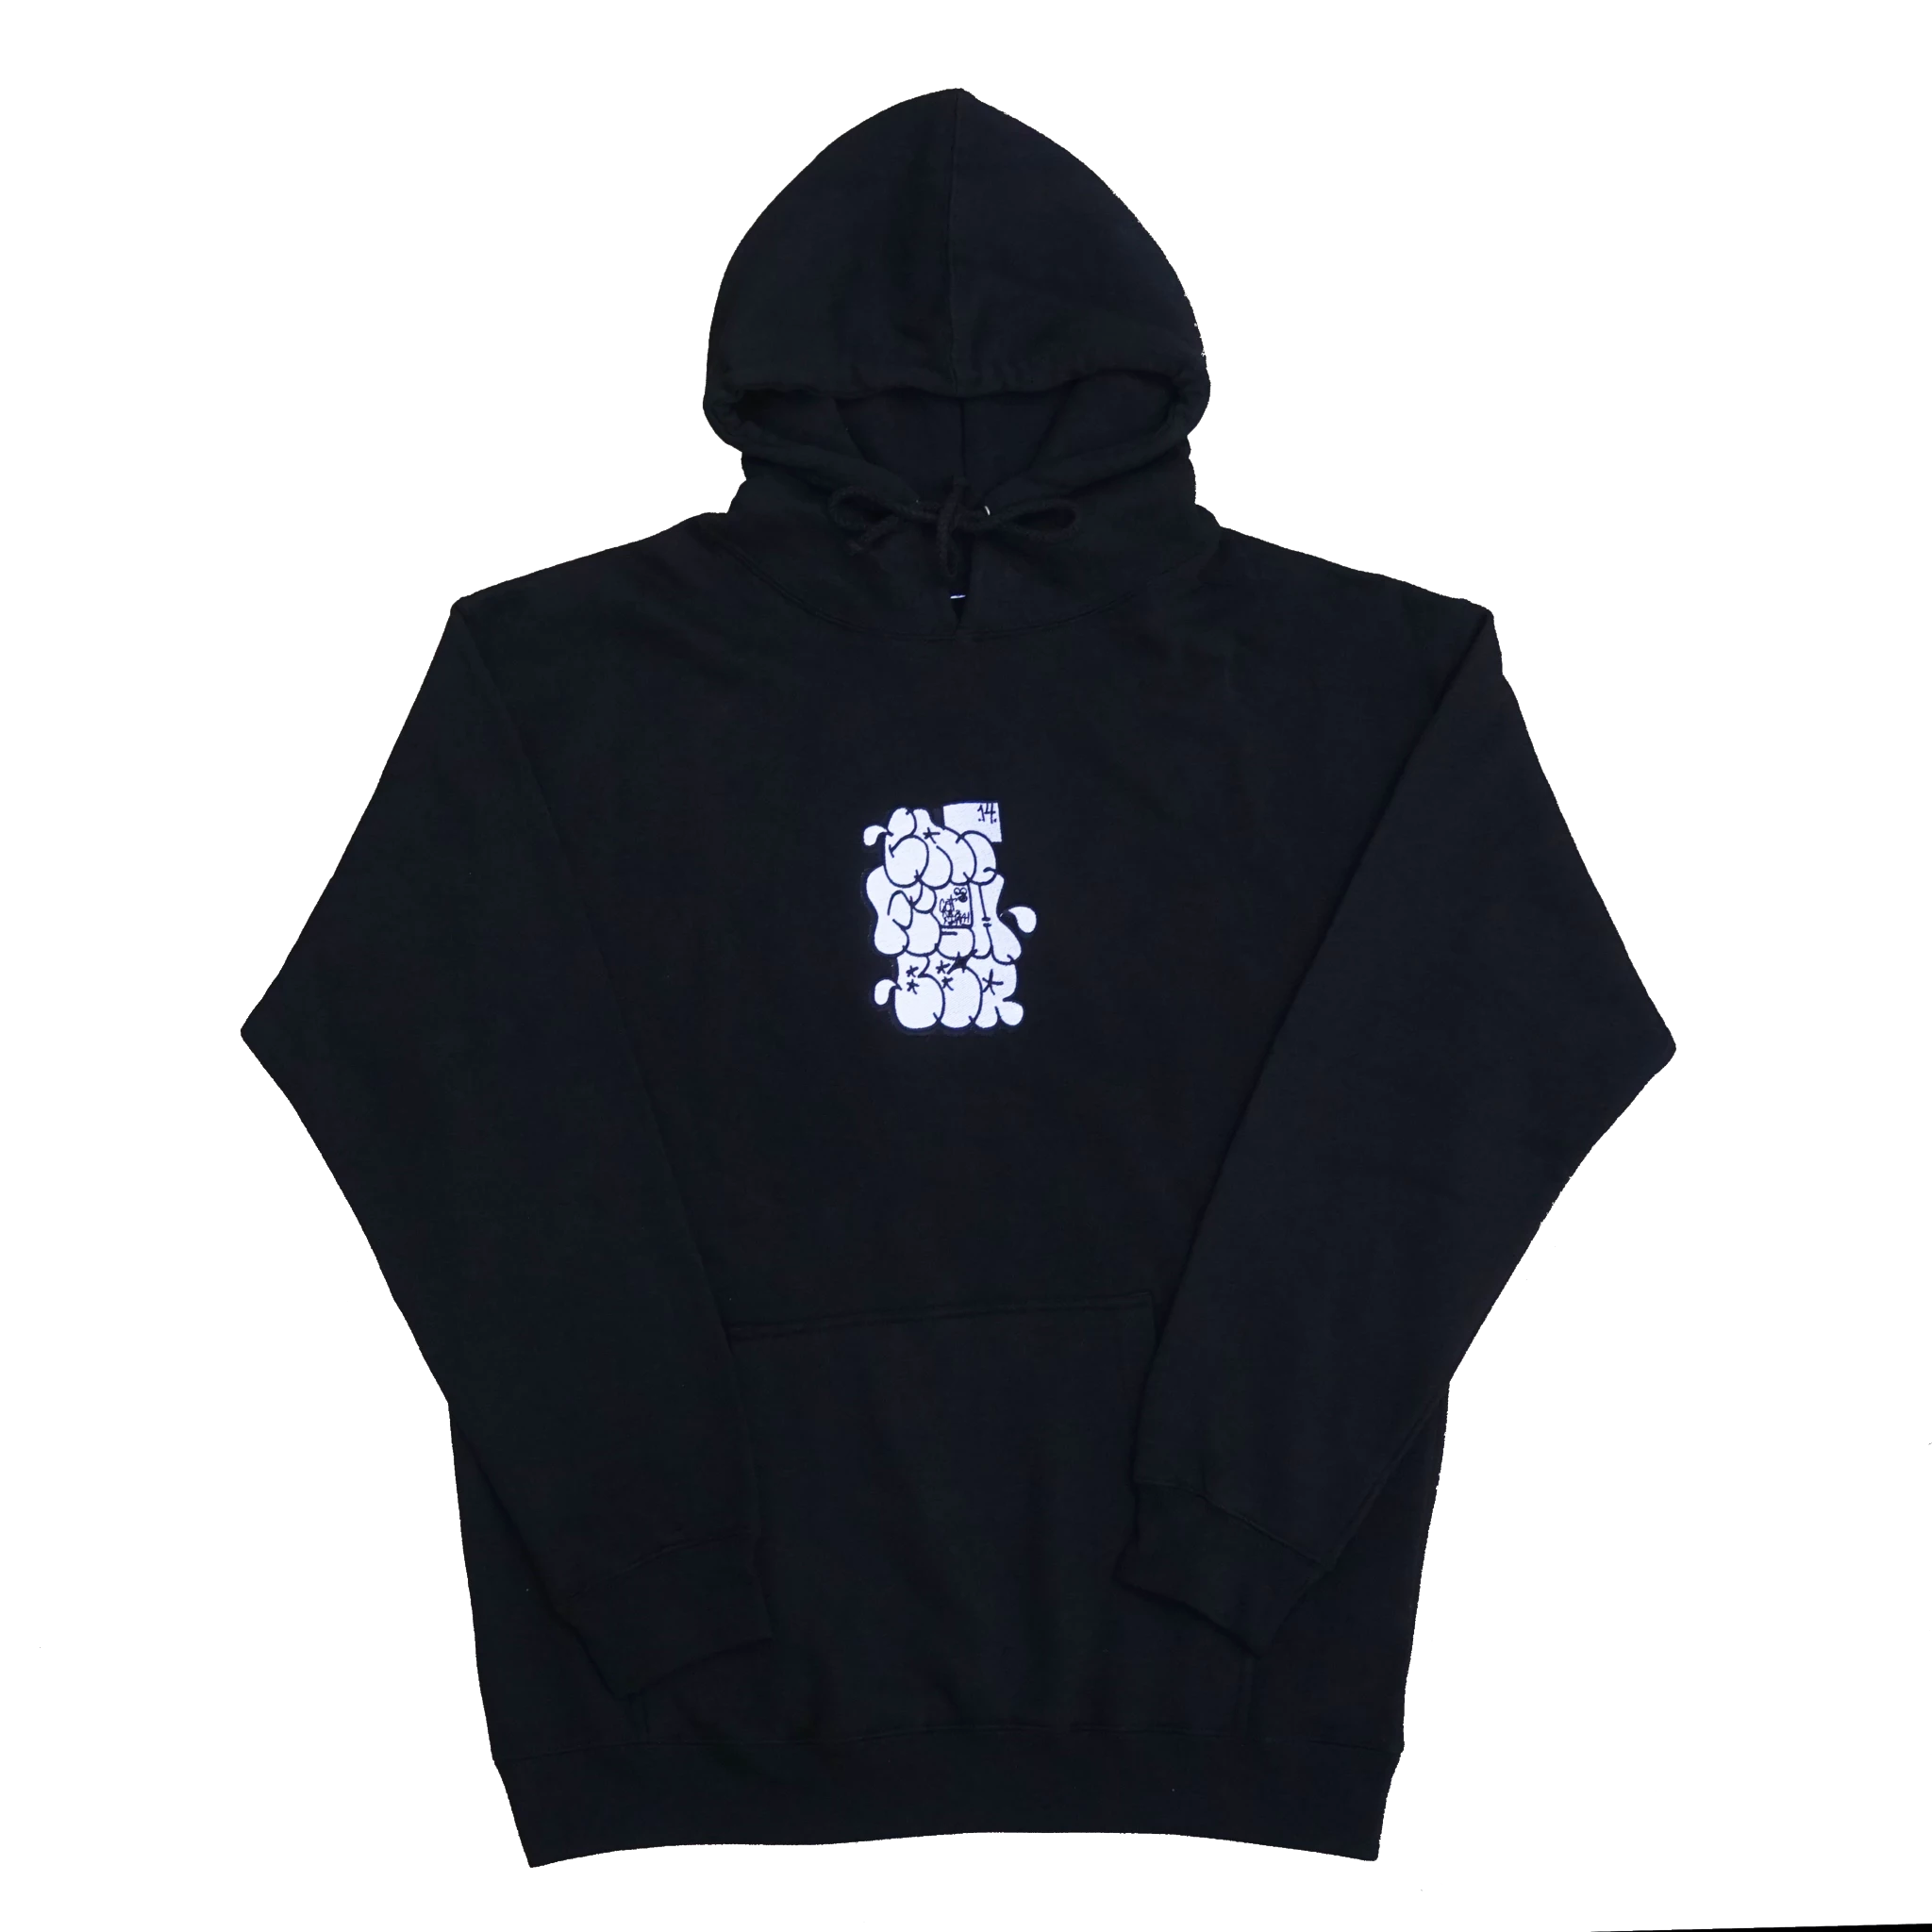 CatfishBBQ - Embroidered Graffiti Black Throw Hoodie